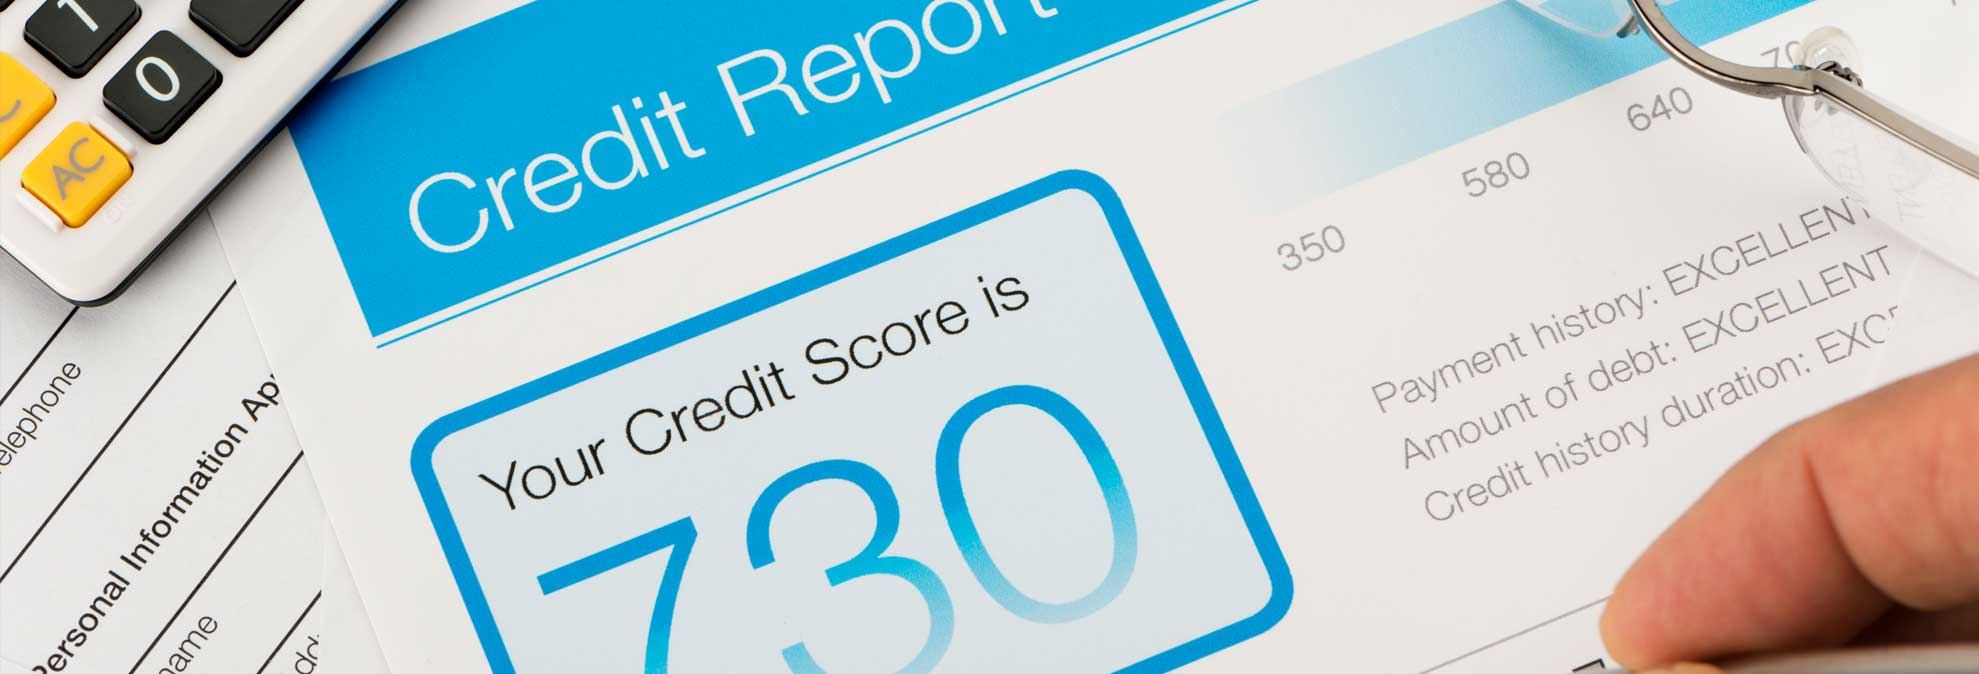 how to help your credit score